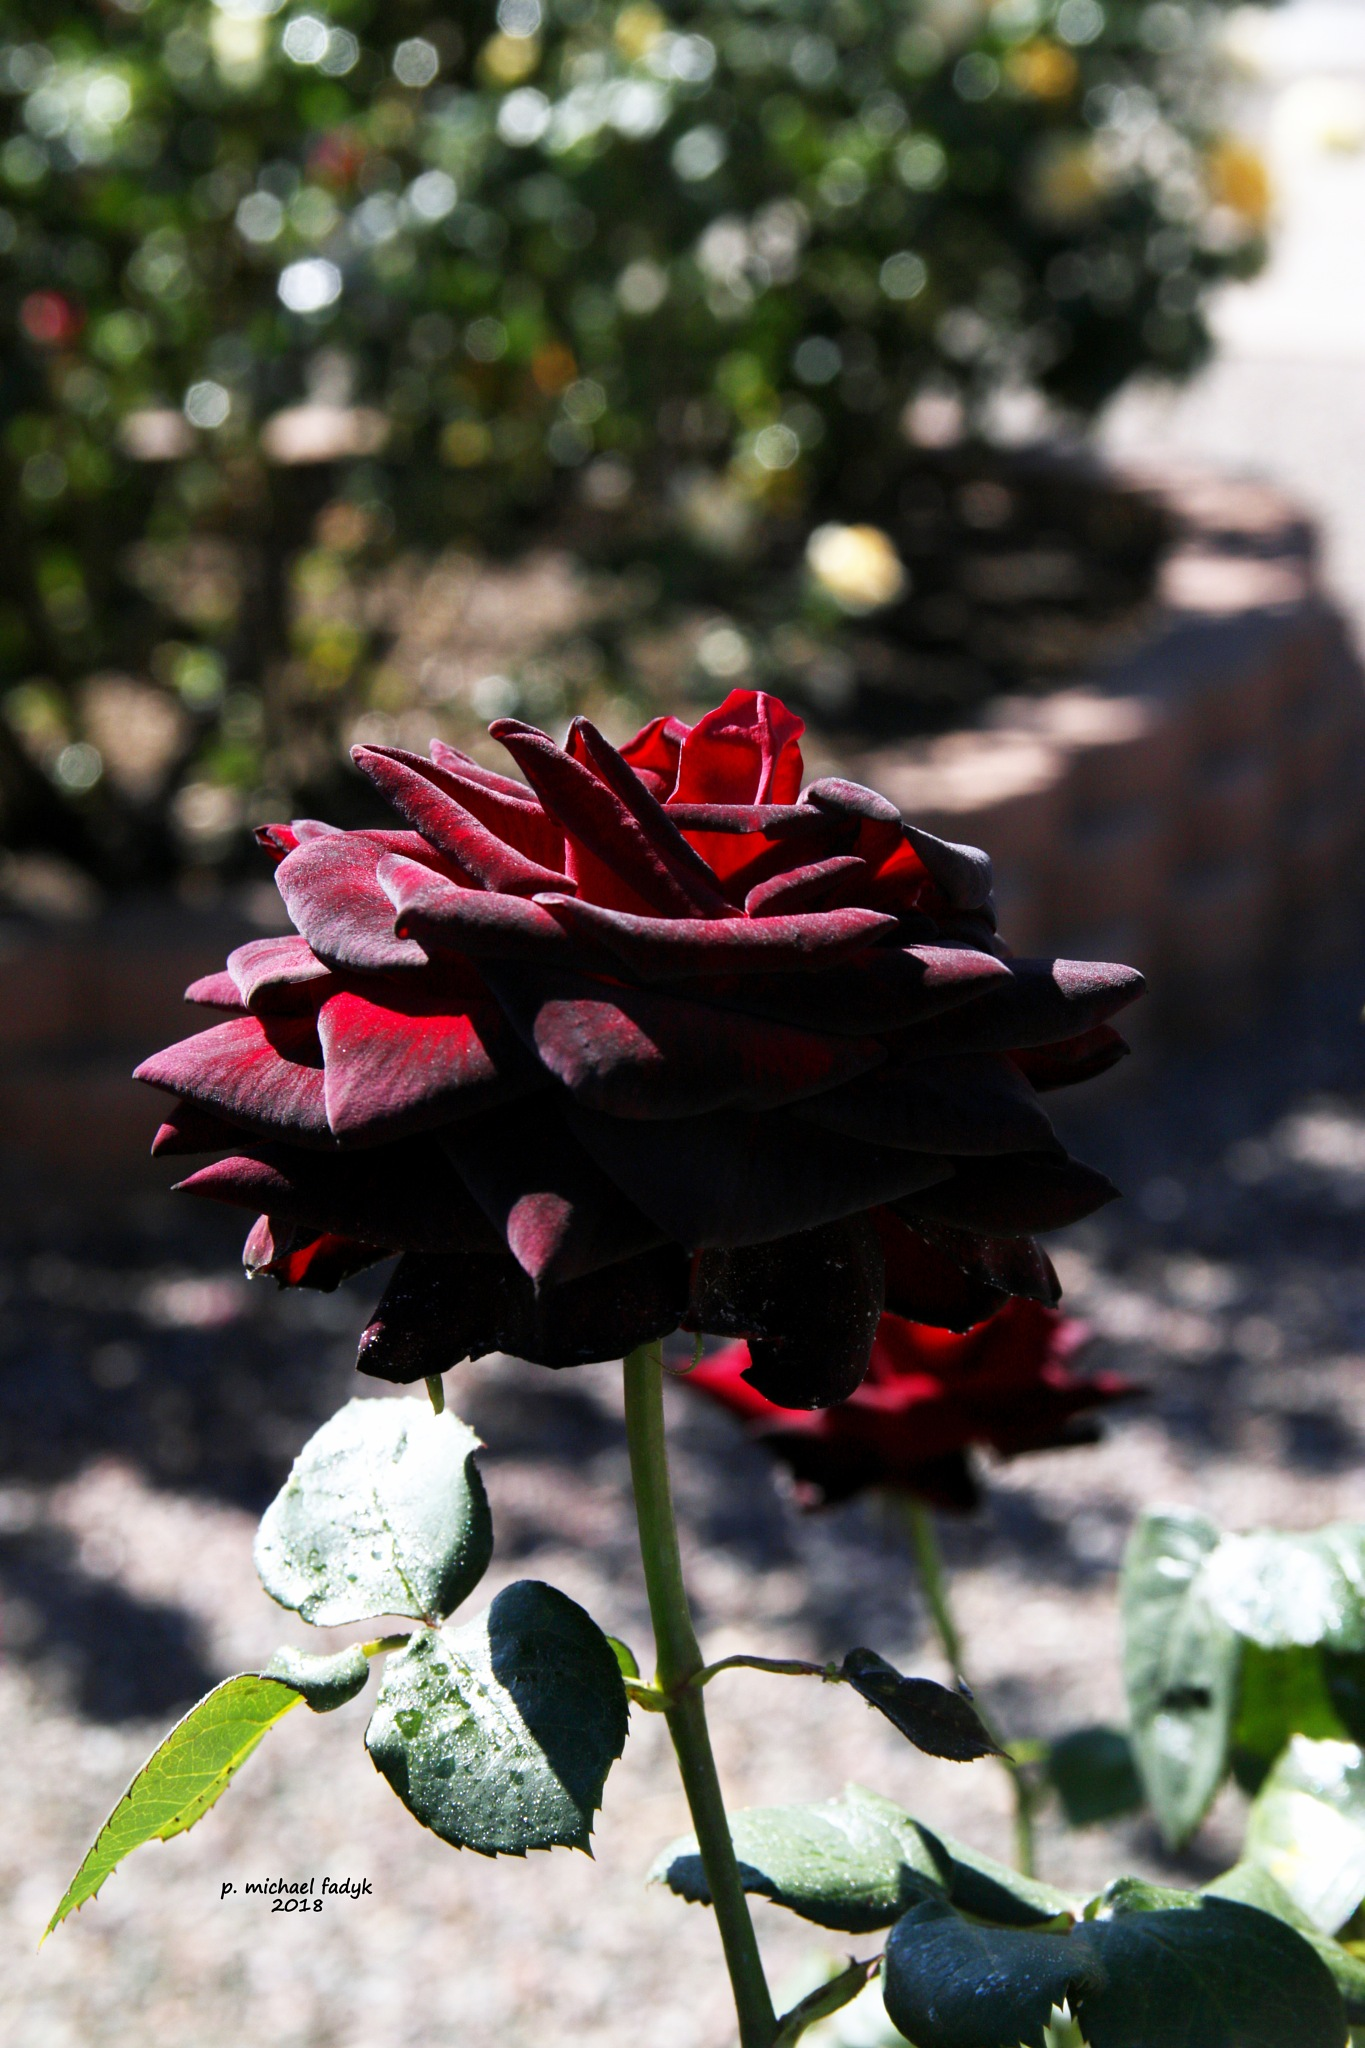 red rose 2 by P. Michael Fadyk